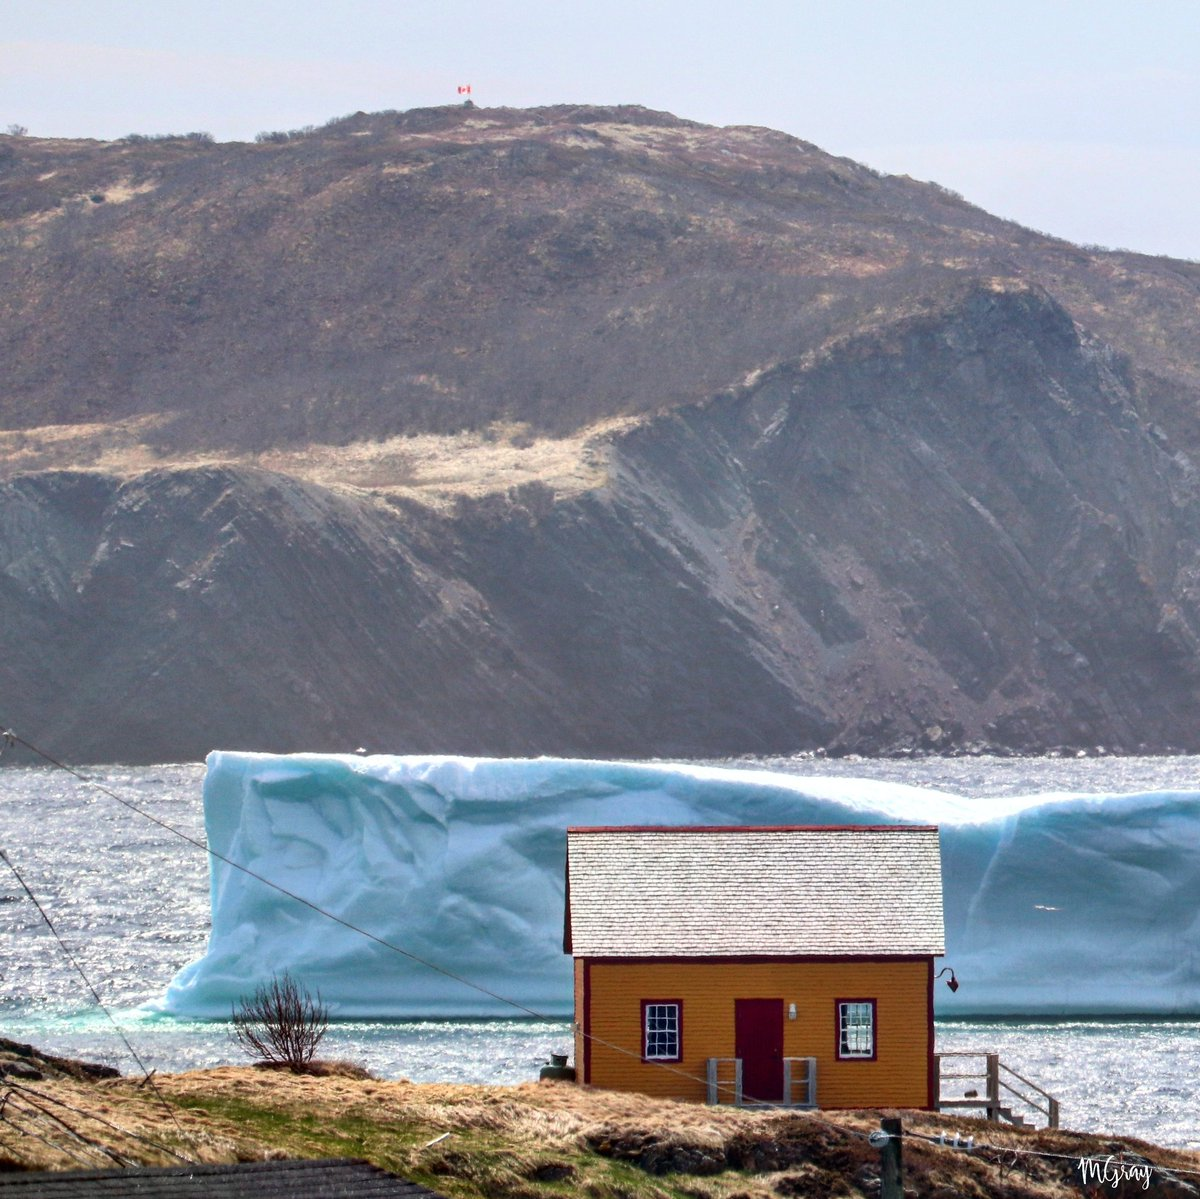 The Canadian Flag  is flying high atop Fox Island while the iceberg lies quite still in the Port Rexton area.  (Click open for full view) #nlwx #ShareYourWeather #explorenl #Canada pic.twitter.com/5aNfWJnx7D